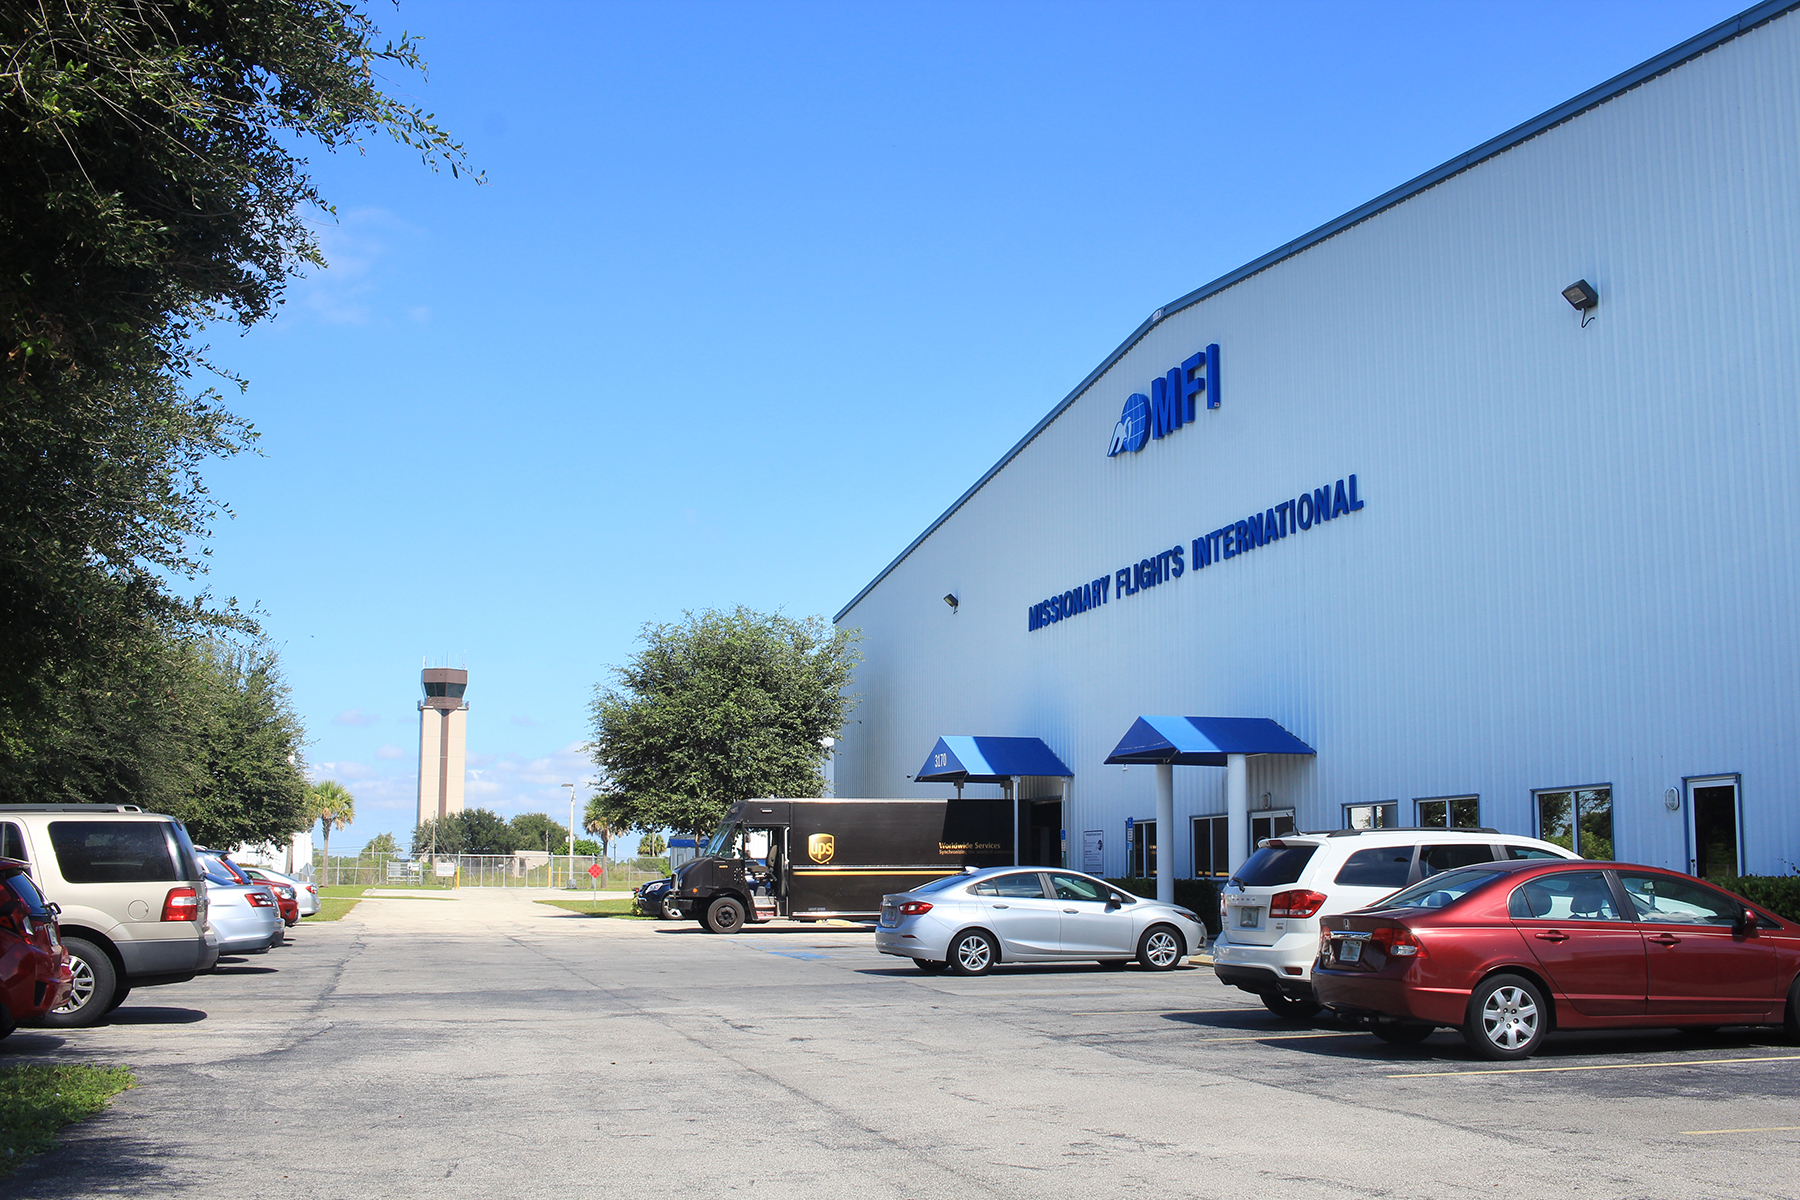 The front of MFI's Main Hangar in Fort Pierce, FL.